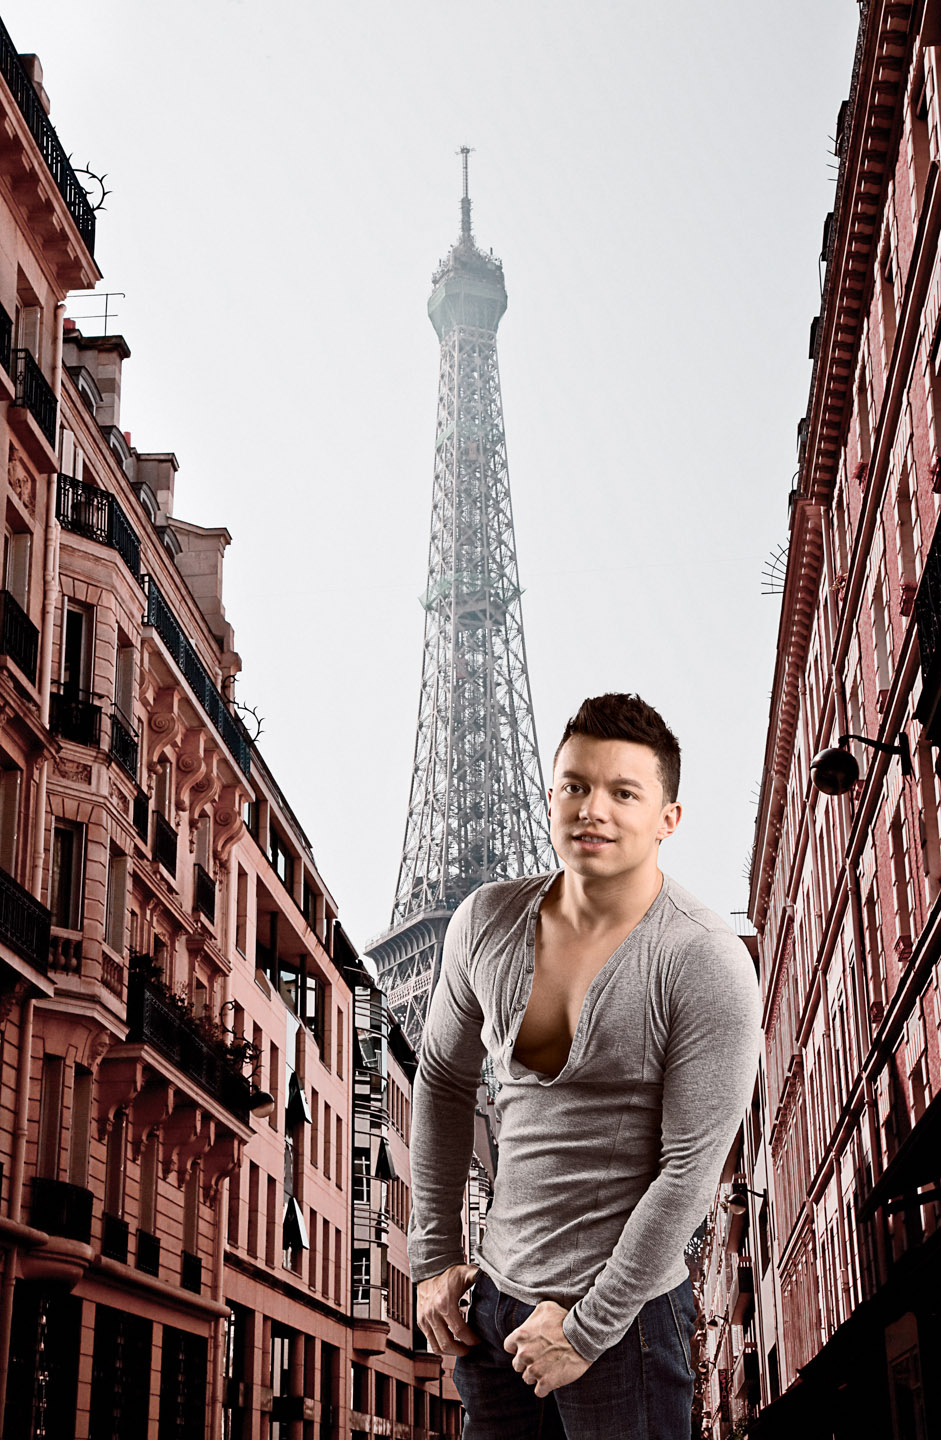 Julio was composited into Paris with the Eiffel Tower in the background